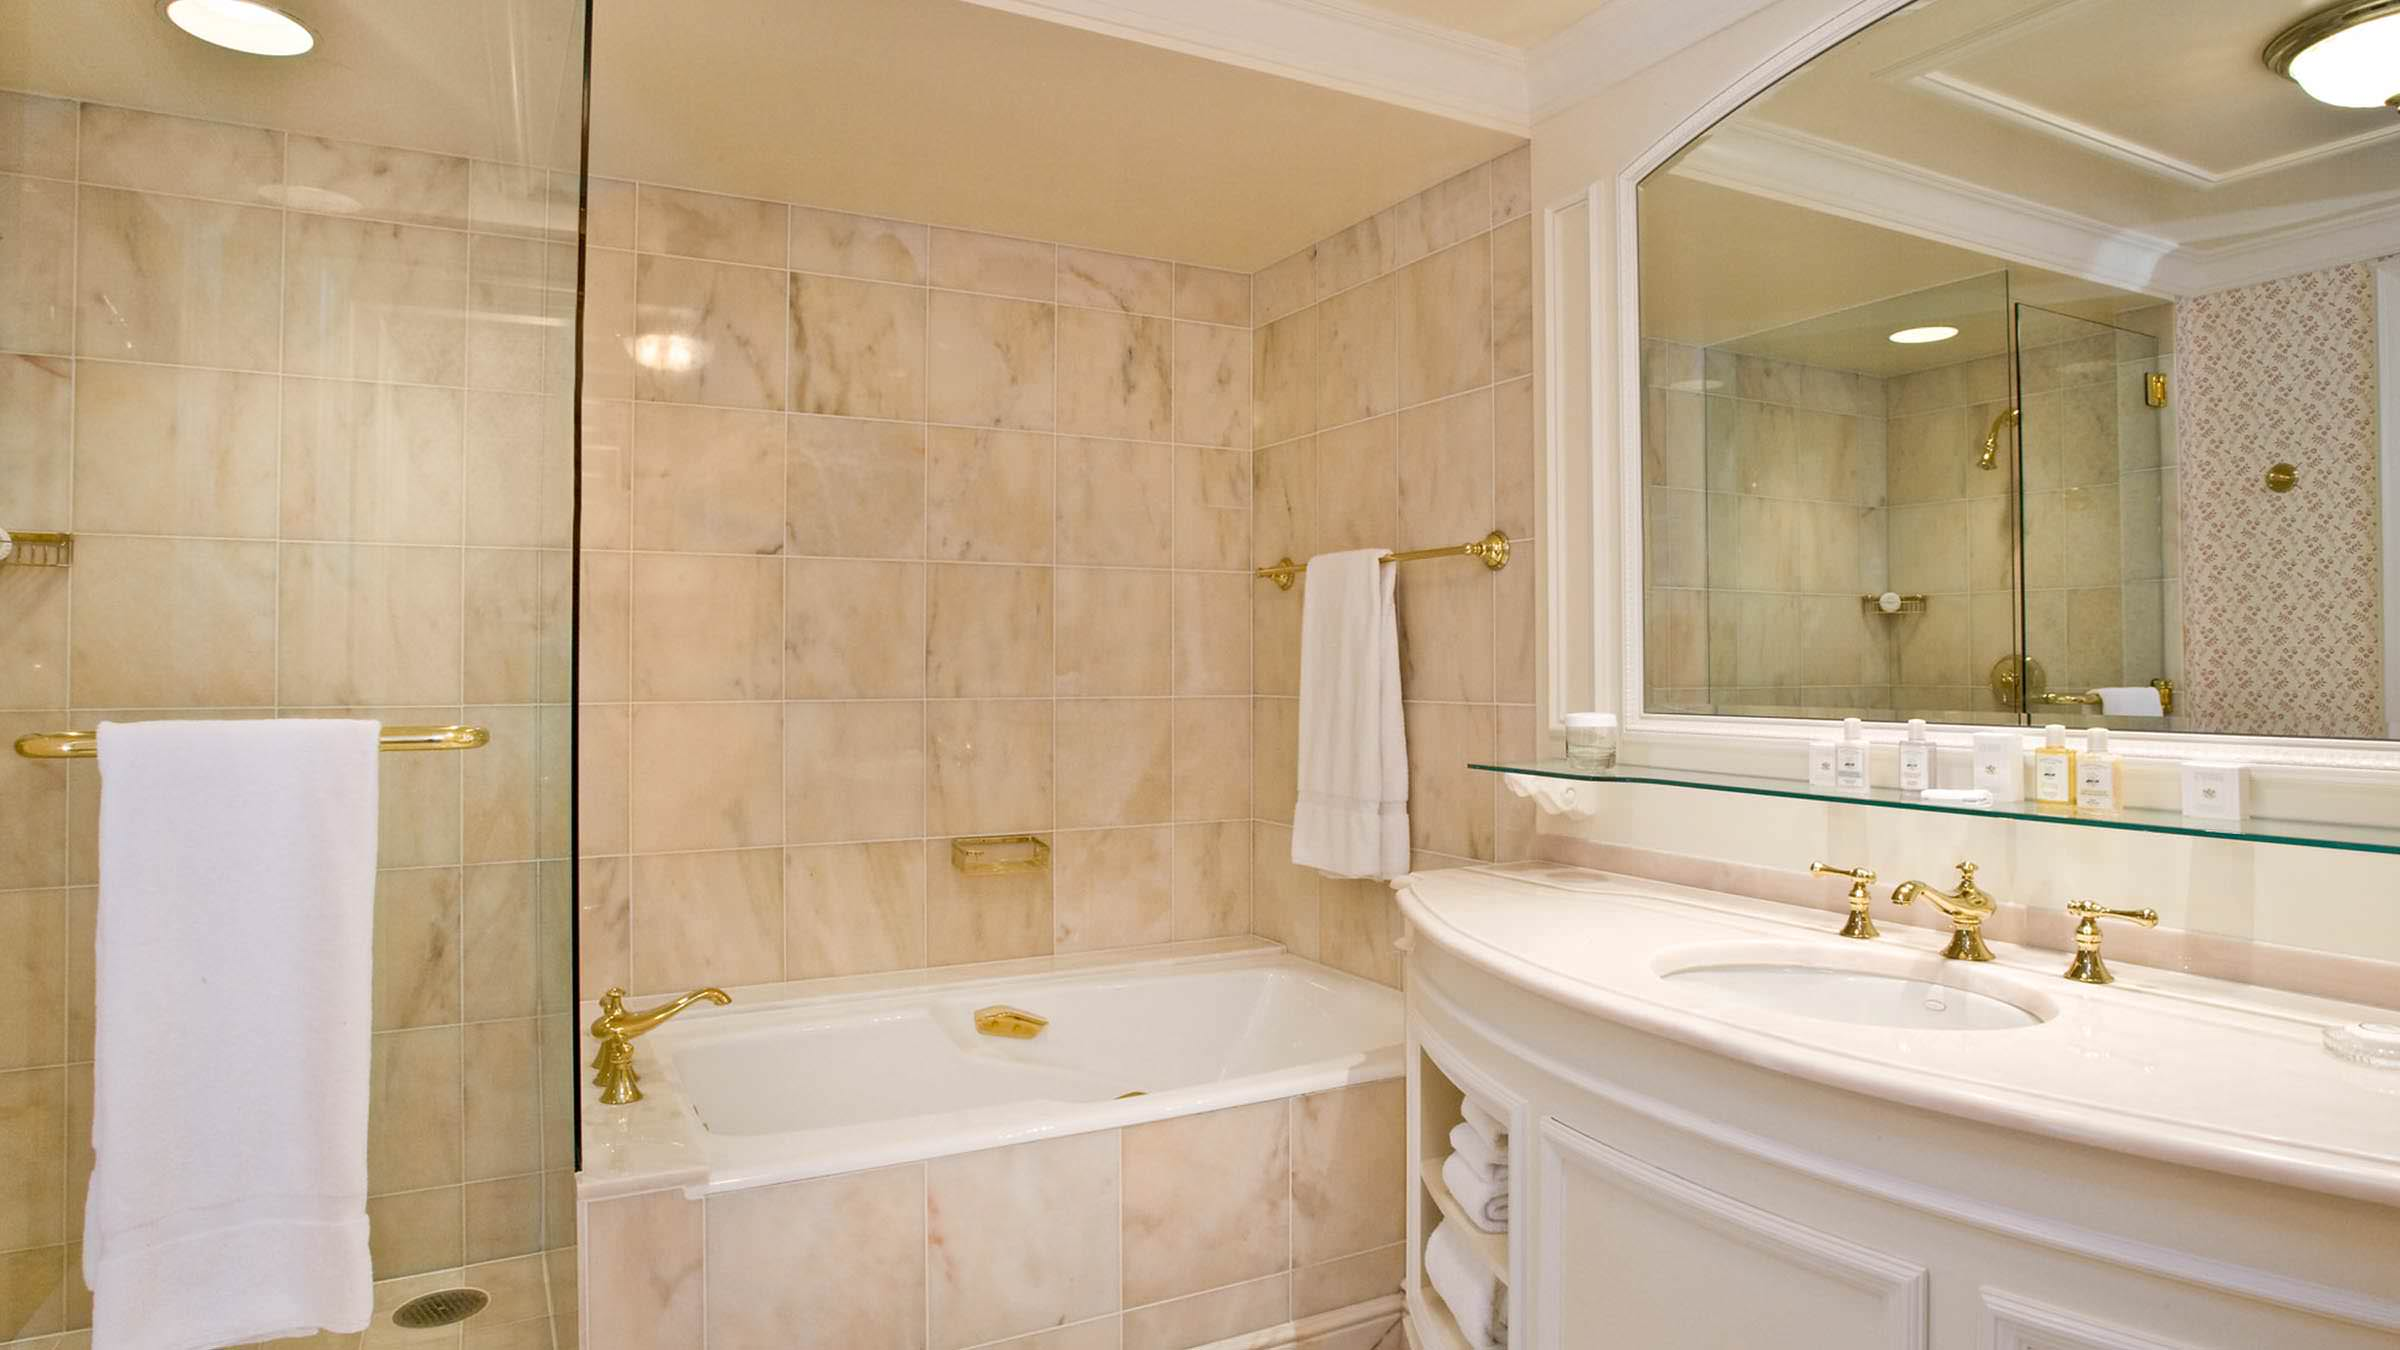 Carrara Italian Marble Guestroom Bathroom at the Grand America Hotel.